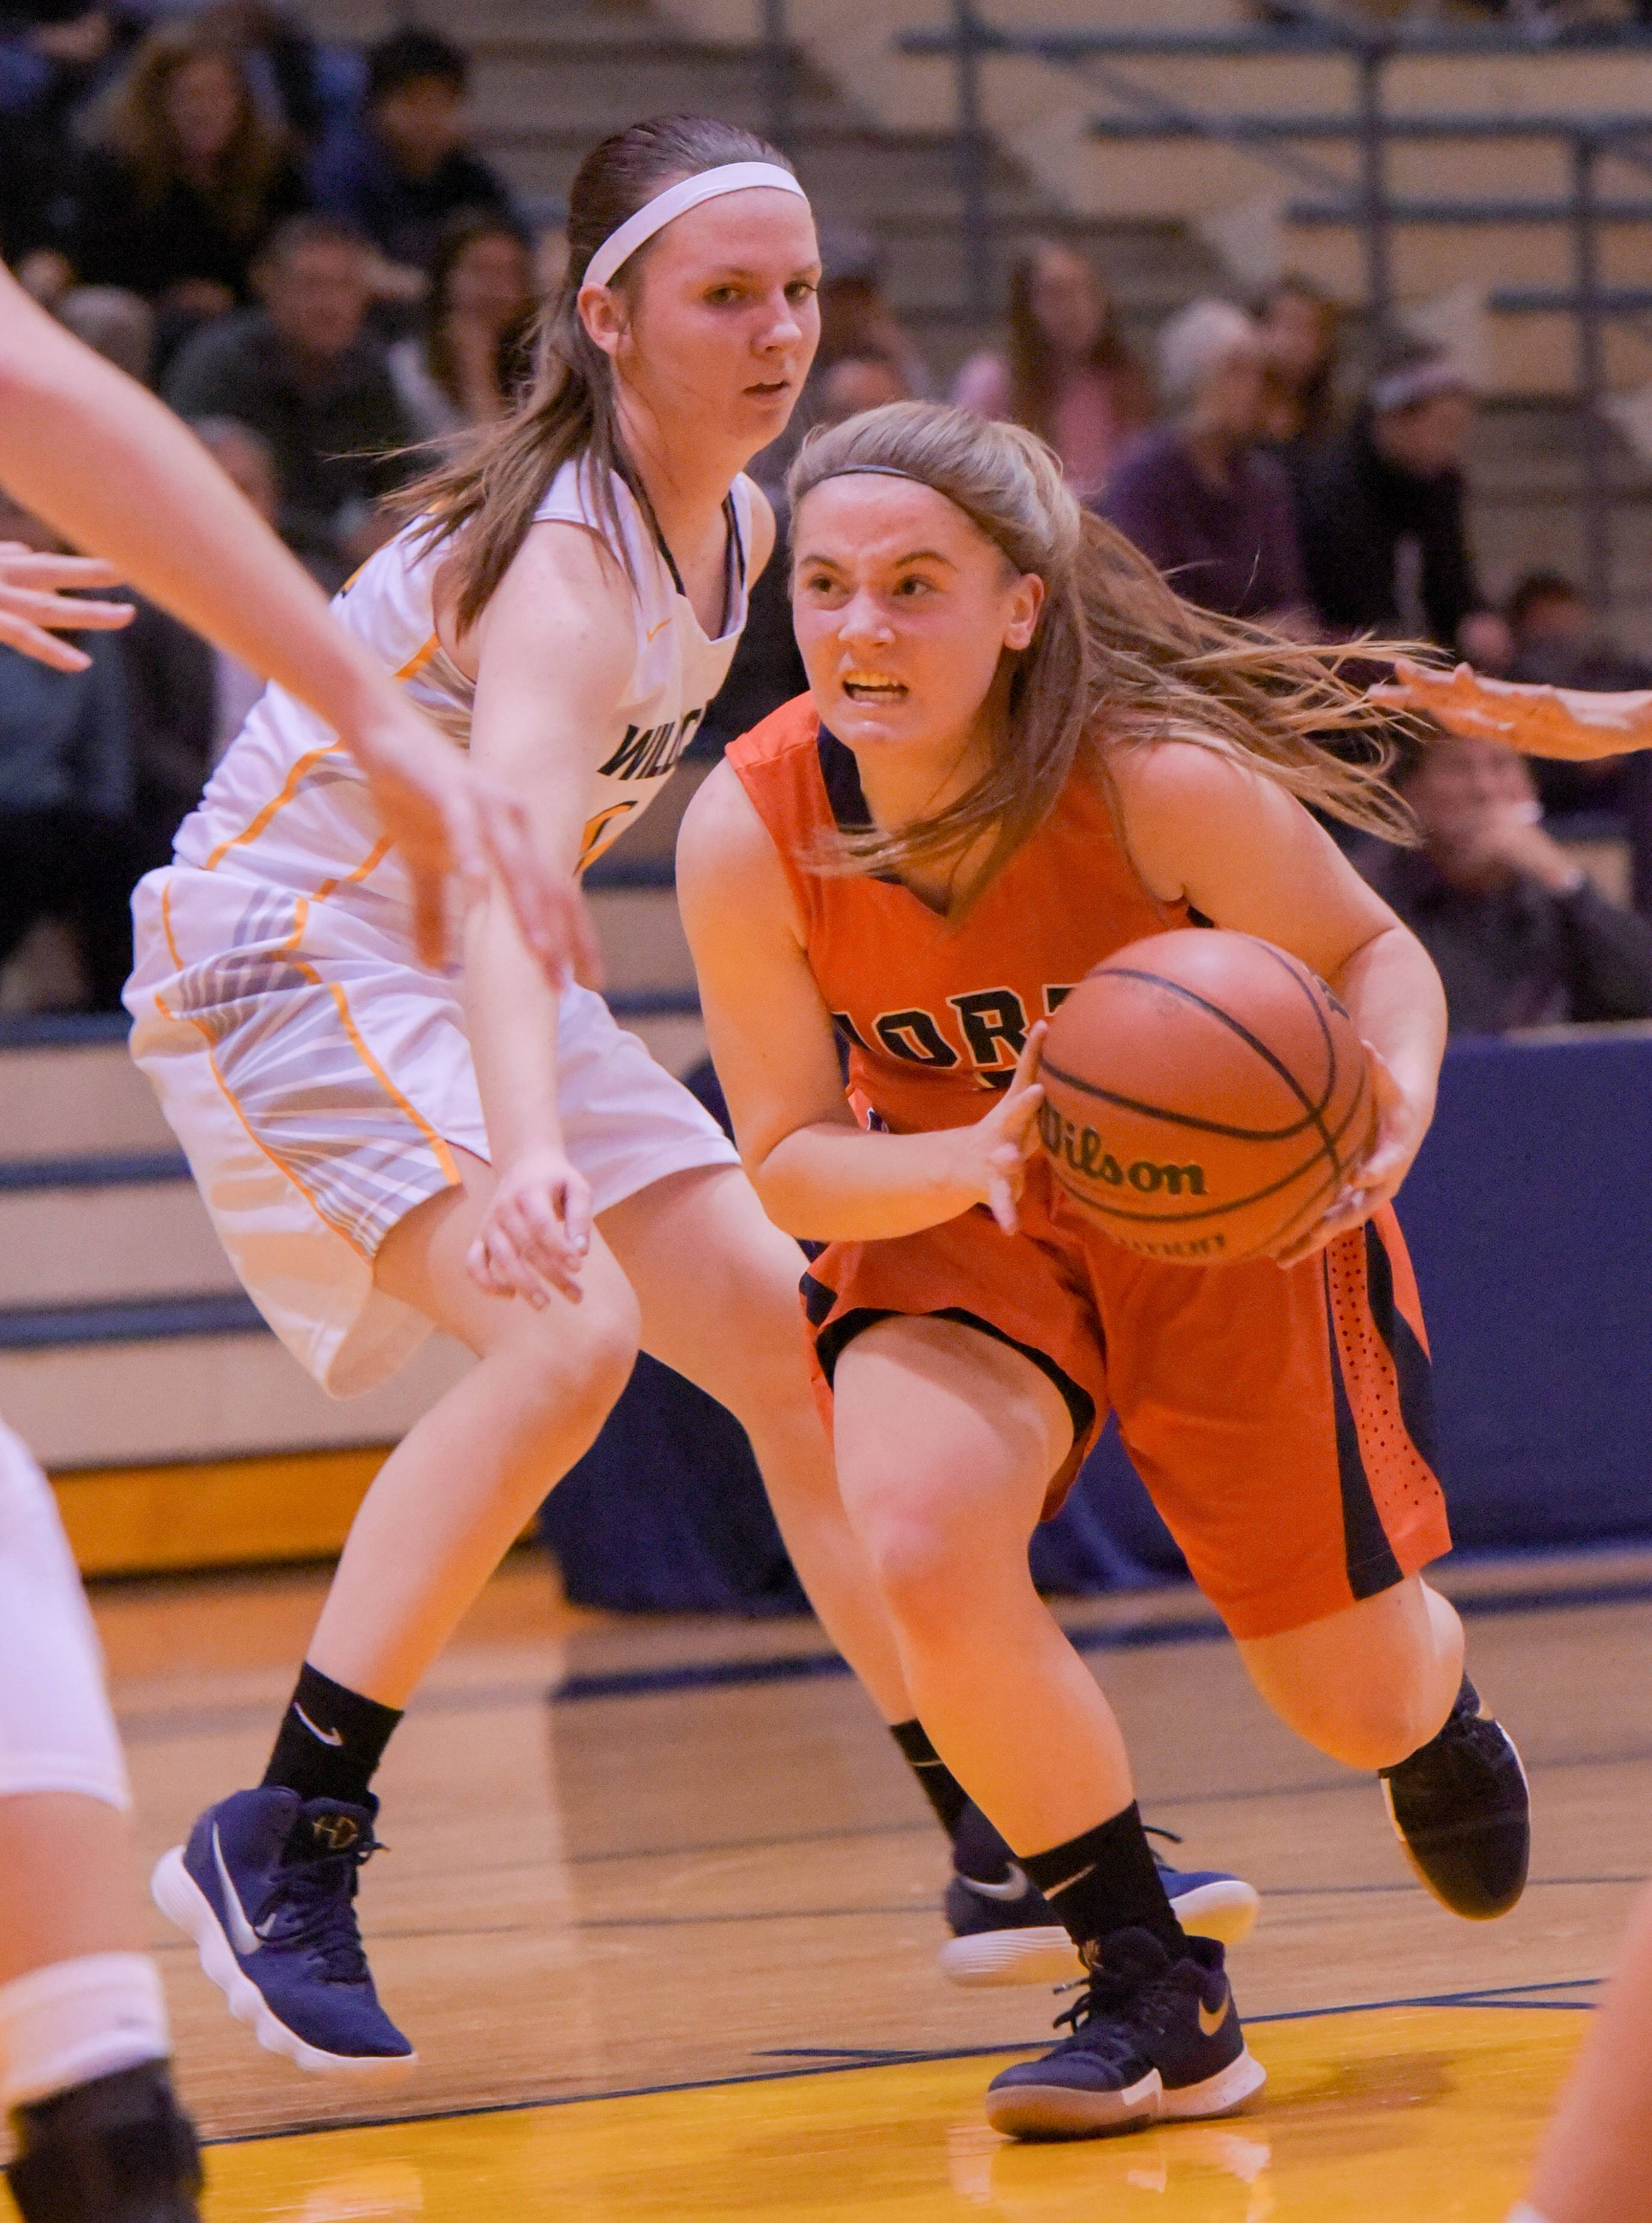 Naperville North's Kara Rivard drives past Neuqua Valley's Taylor Crowley during girls basketball at on Wednesday, Jan. 10, 2018.